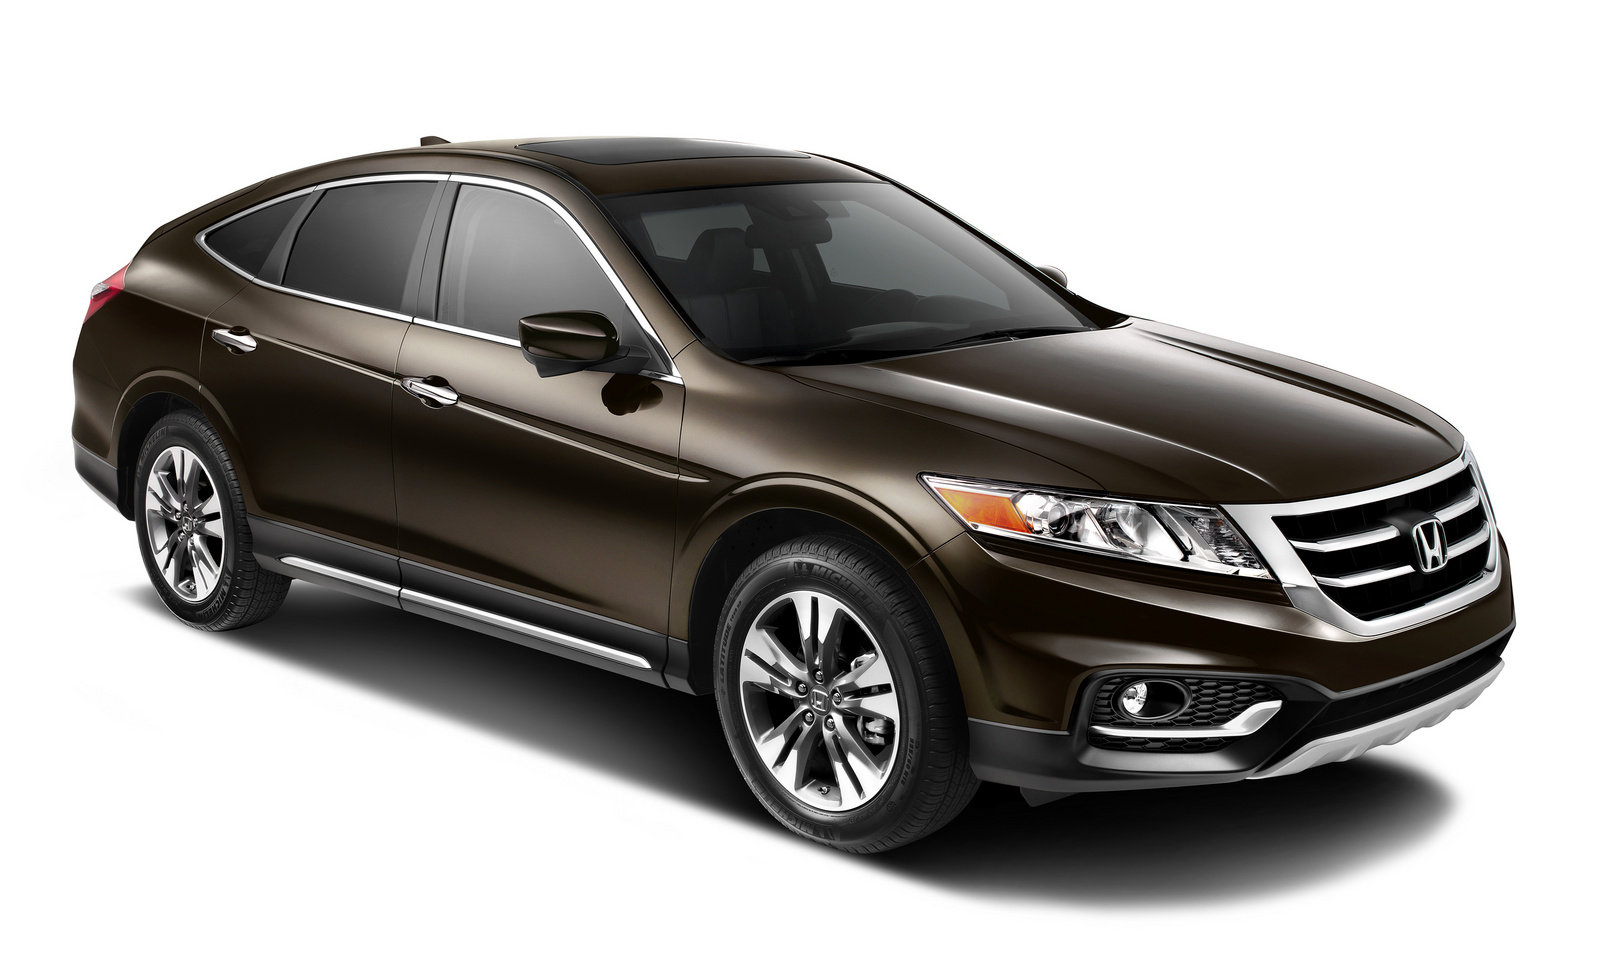 Home / Research / Honda / Crosstour / 2014